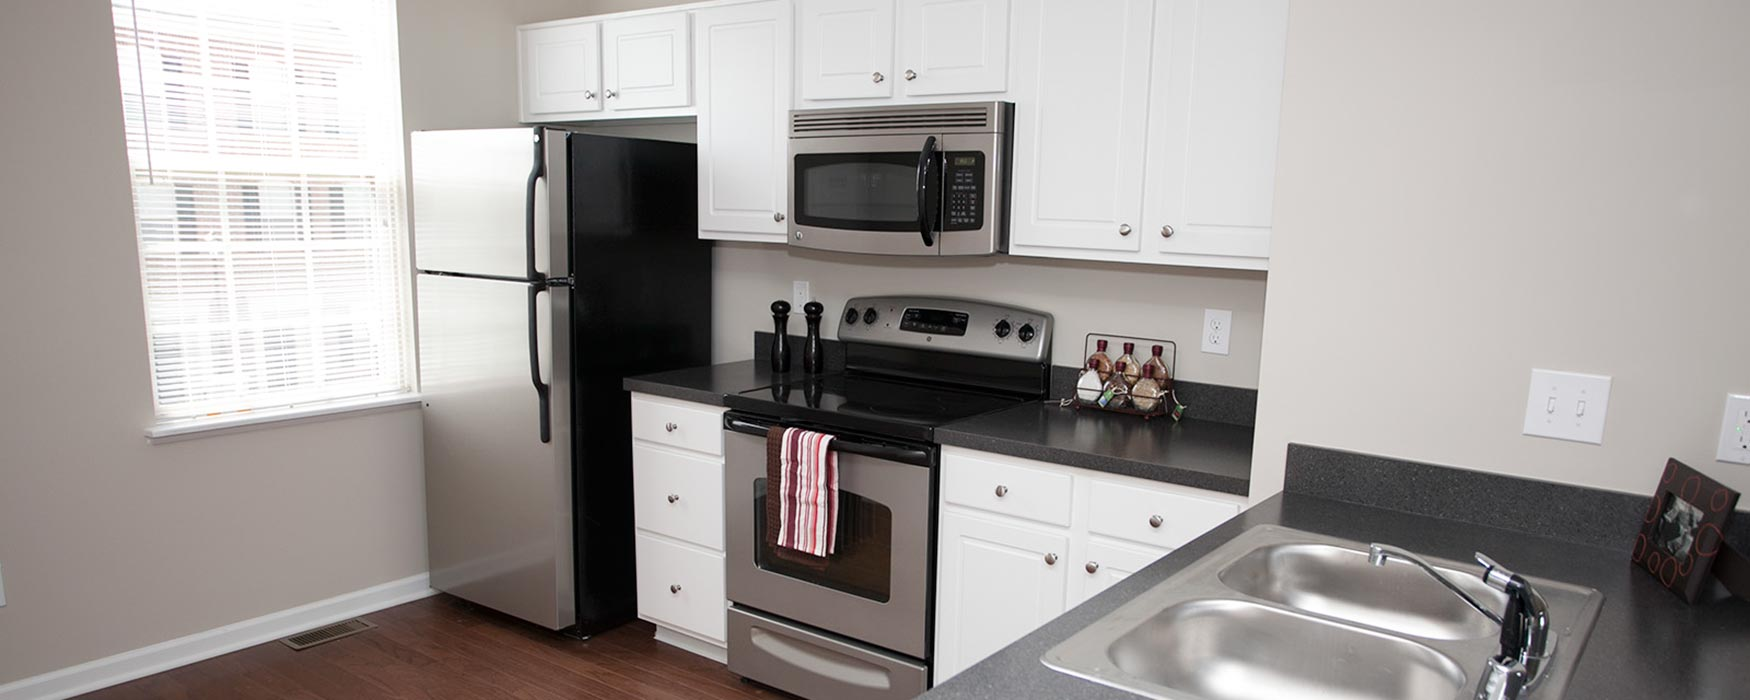 LC The Mill | Georgetown Apartments | Stansbury Town Kitchen